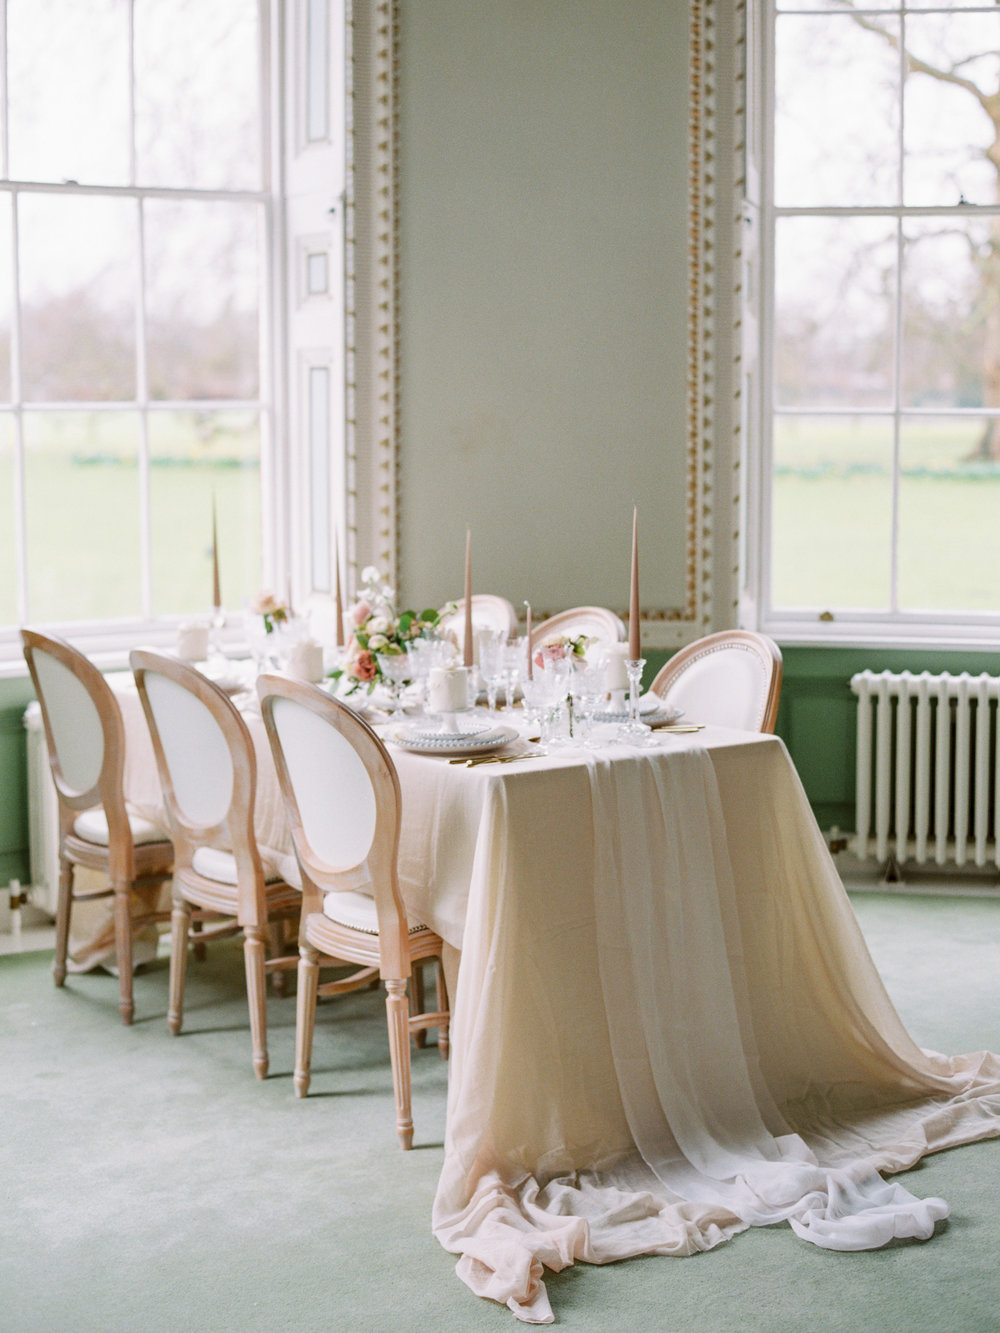 The Timeless Stylist-Elegant and Romantic Wedding Styling-Flowing Linen Tablecloth with Runner.jpg